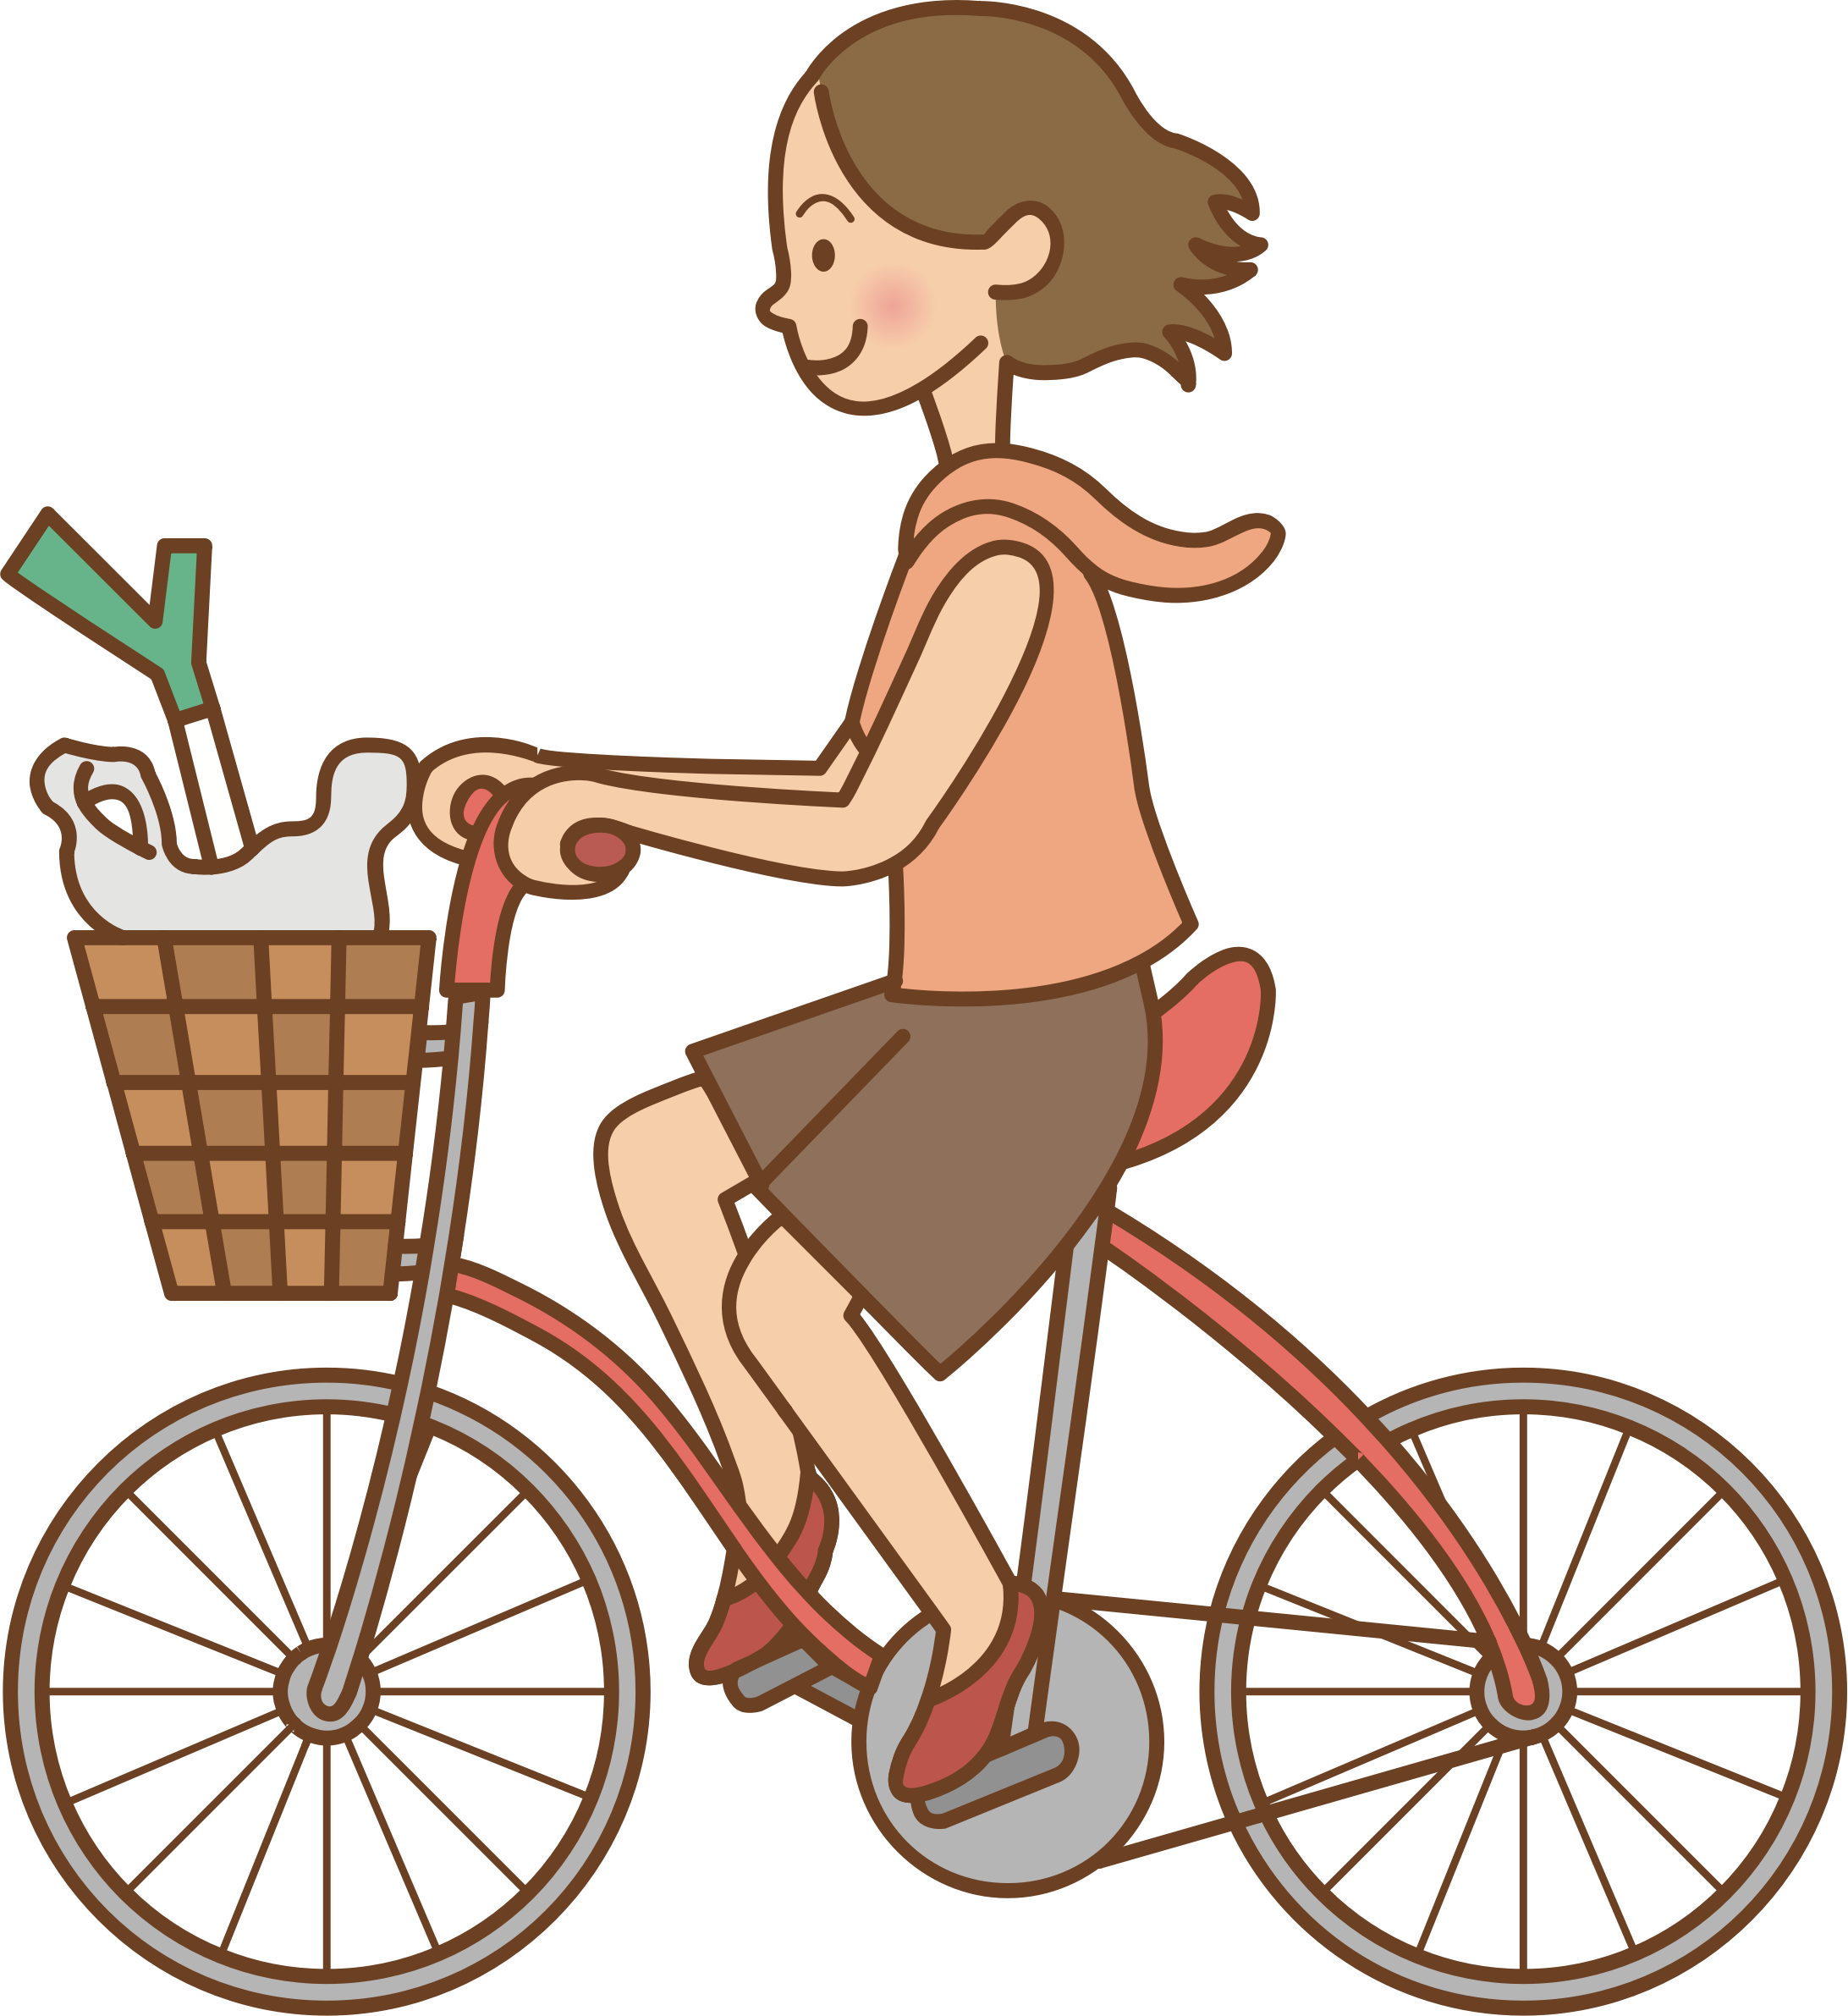 Woman riding a bicycle by oksmith